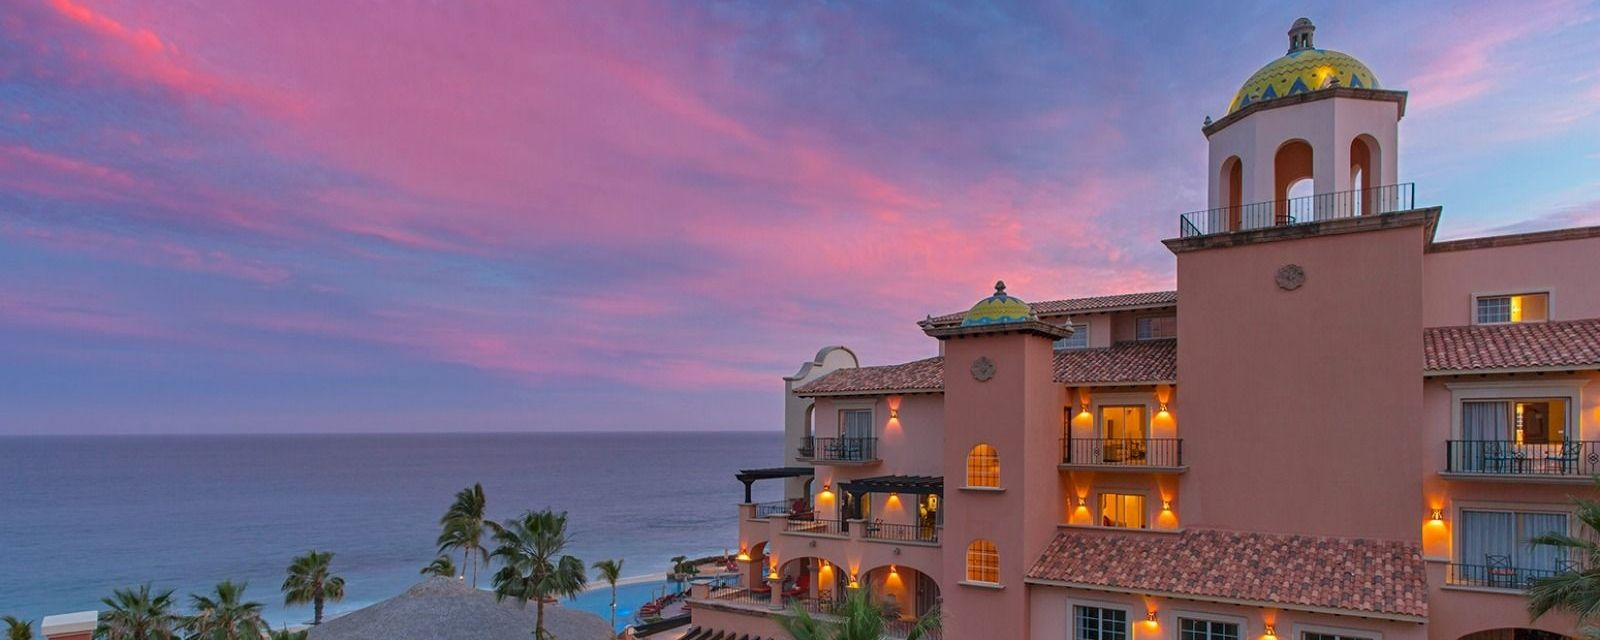 Sheraton Hacienda del Mar- Main Building Sunset